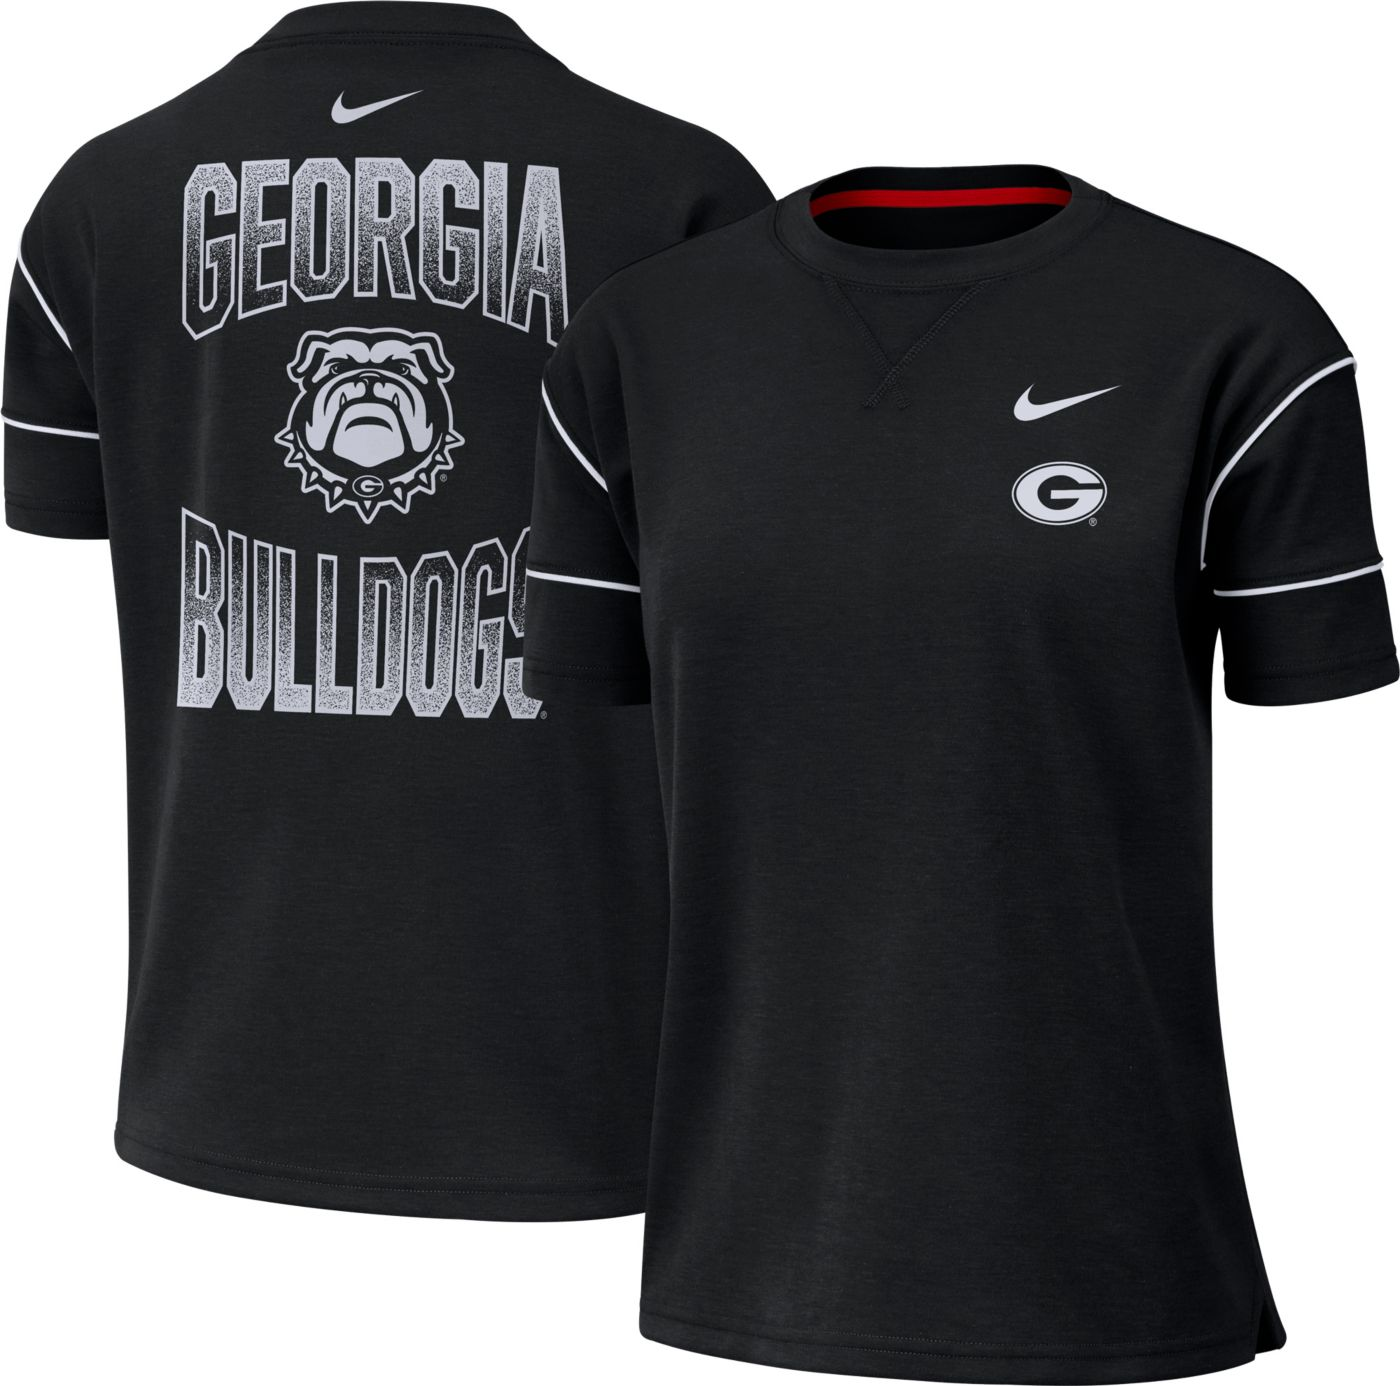 Nike Women's Georgia Bulldogs Breathe Crew Neck Black T-Shirt